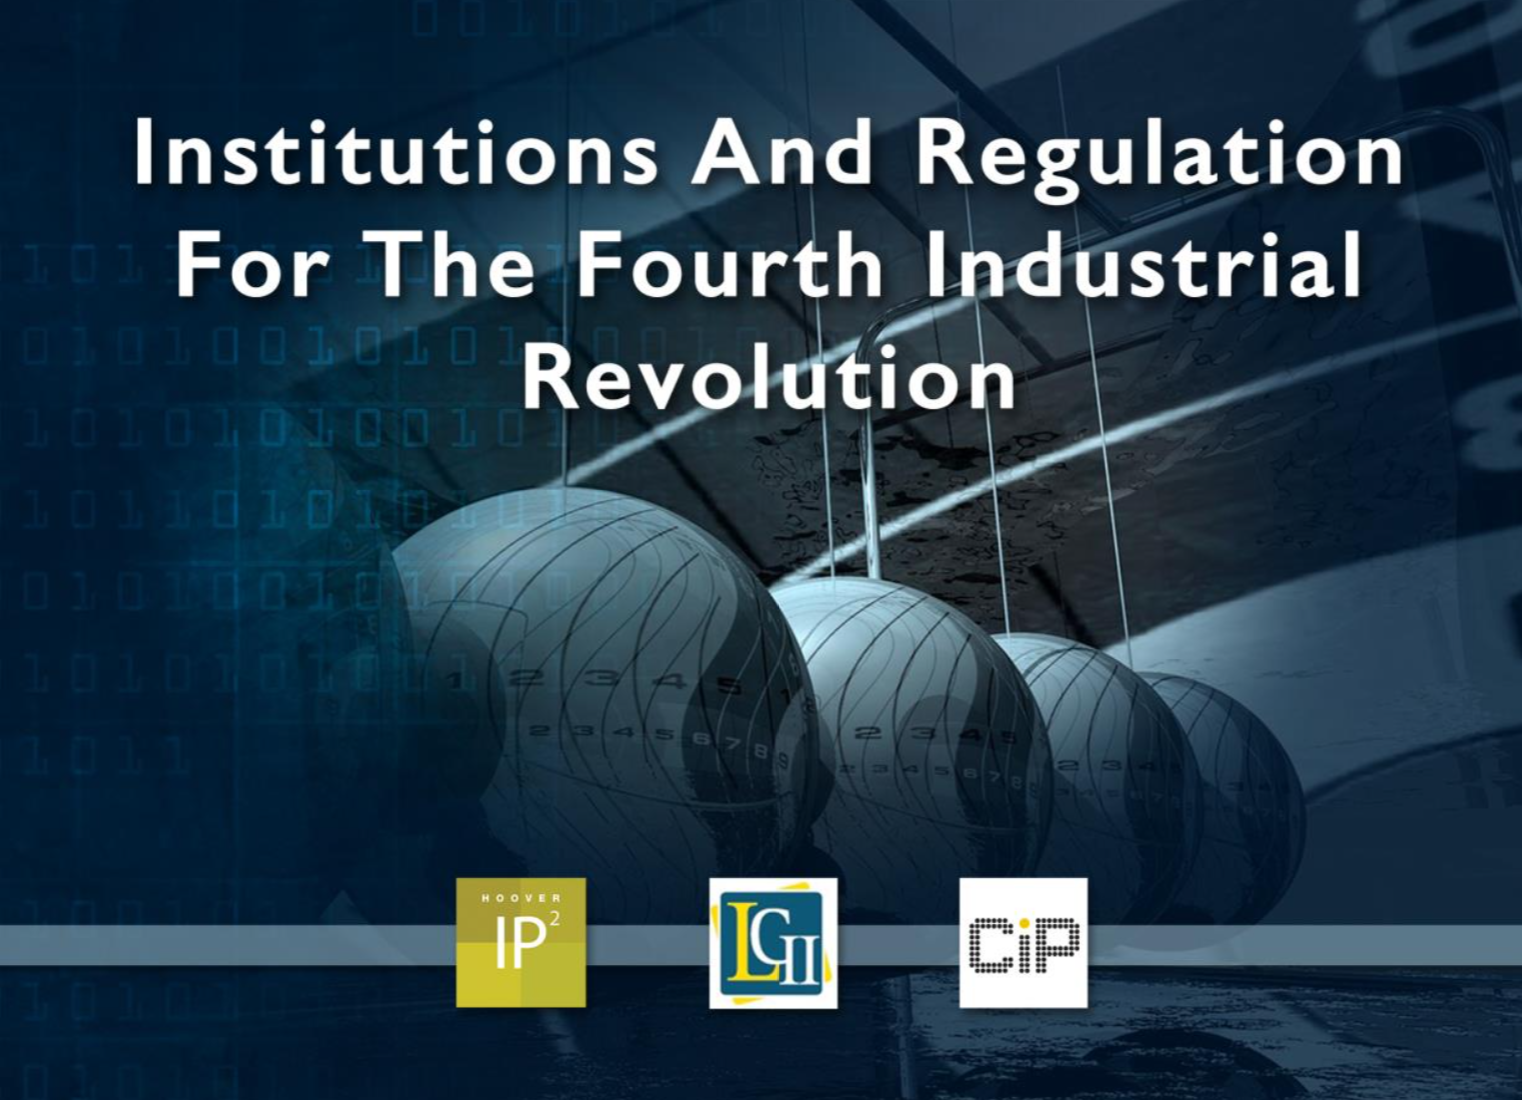 CIP Co-hosts Conference In Brussels On Institutions And Regulation For The Fourth Industrial Revolution